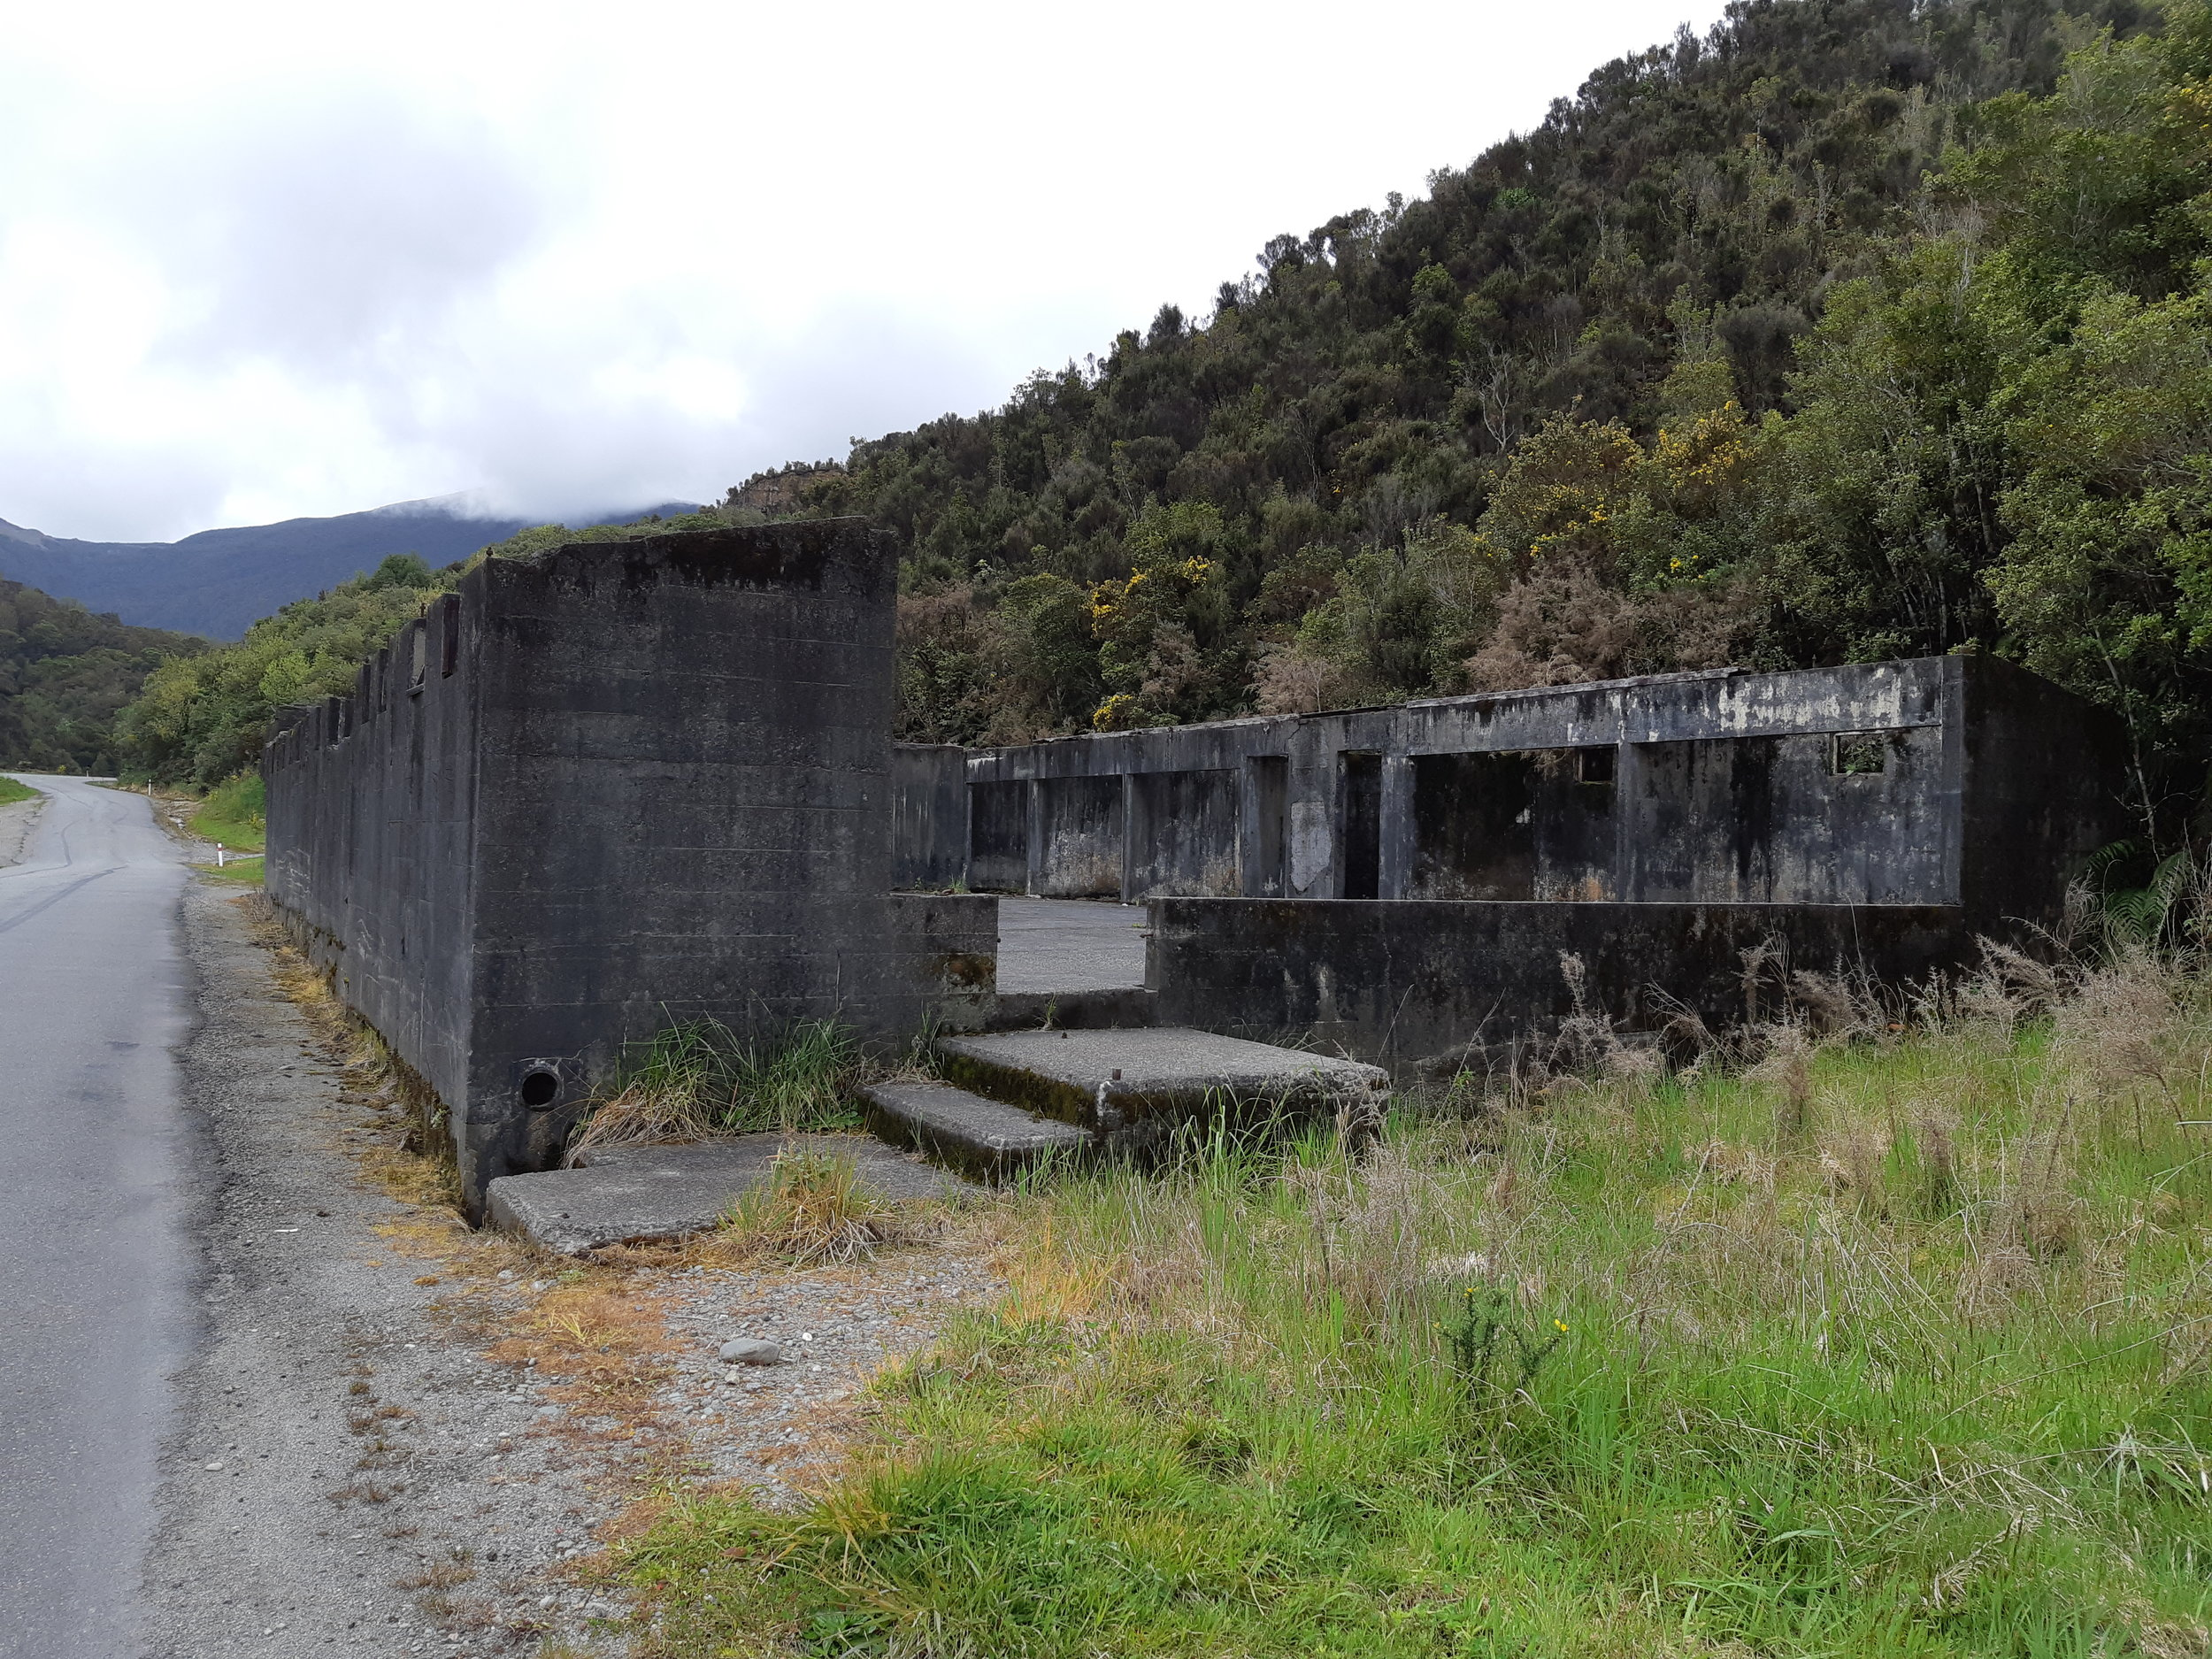 The Blackball Bath House. An outstanding landscape for the Blackball Miners and local community. Wilson, 2018.